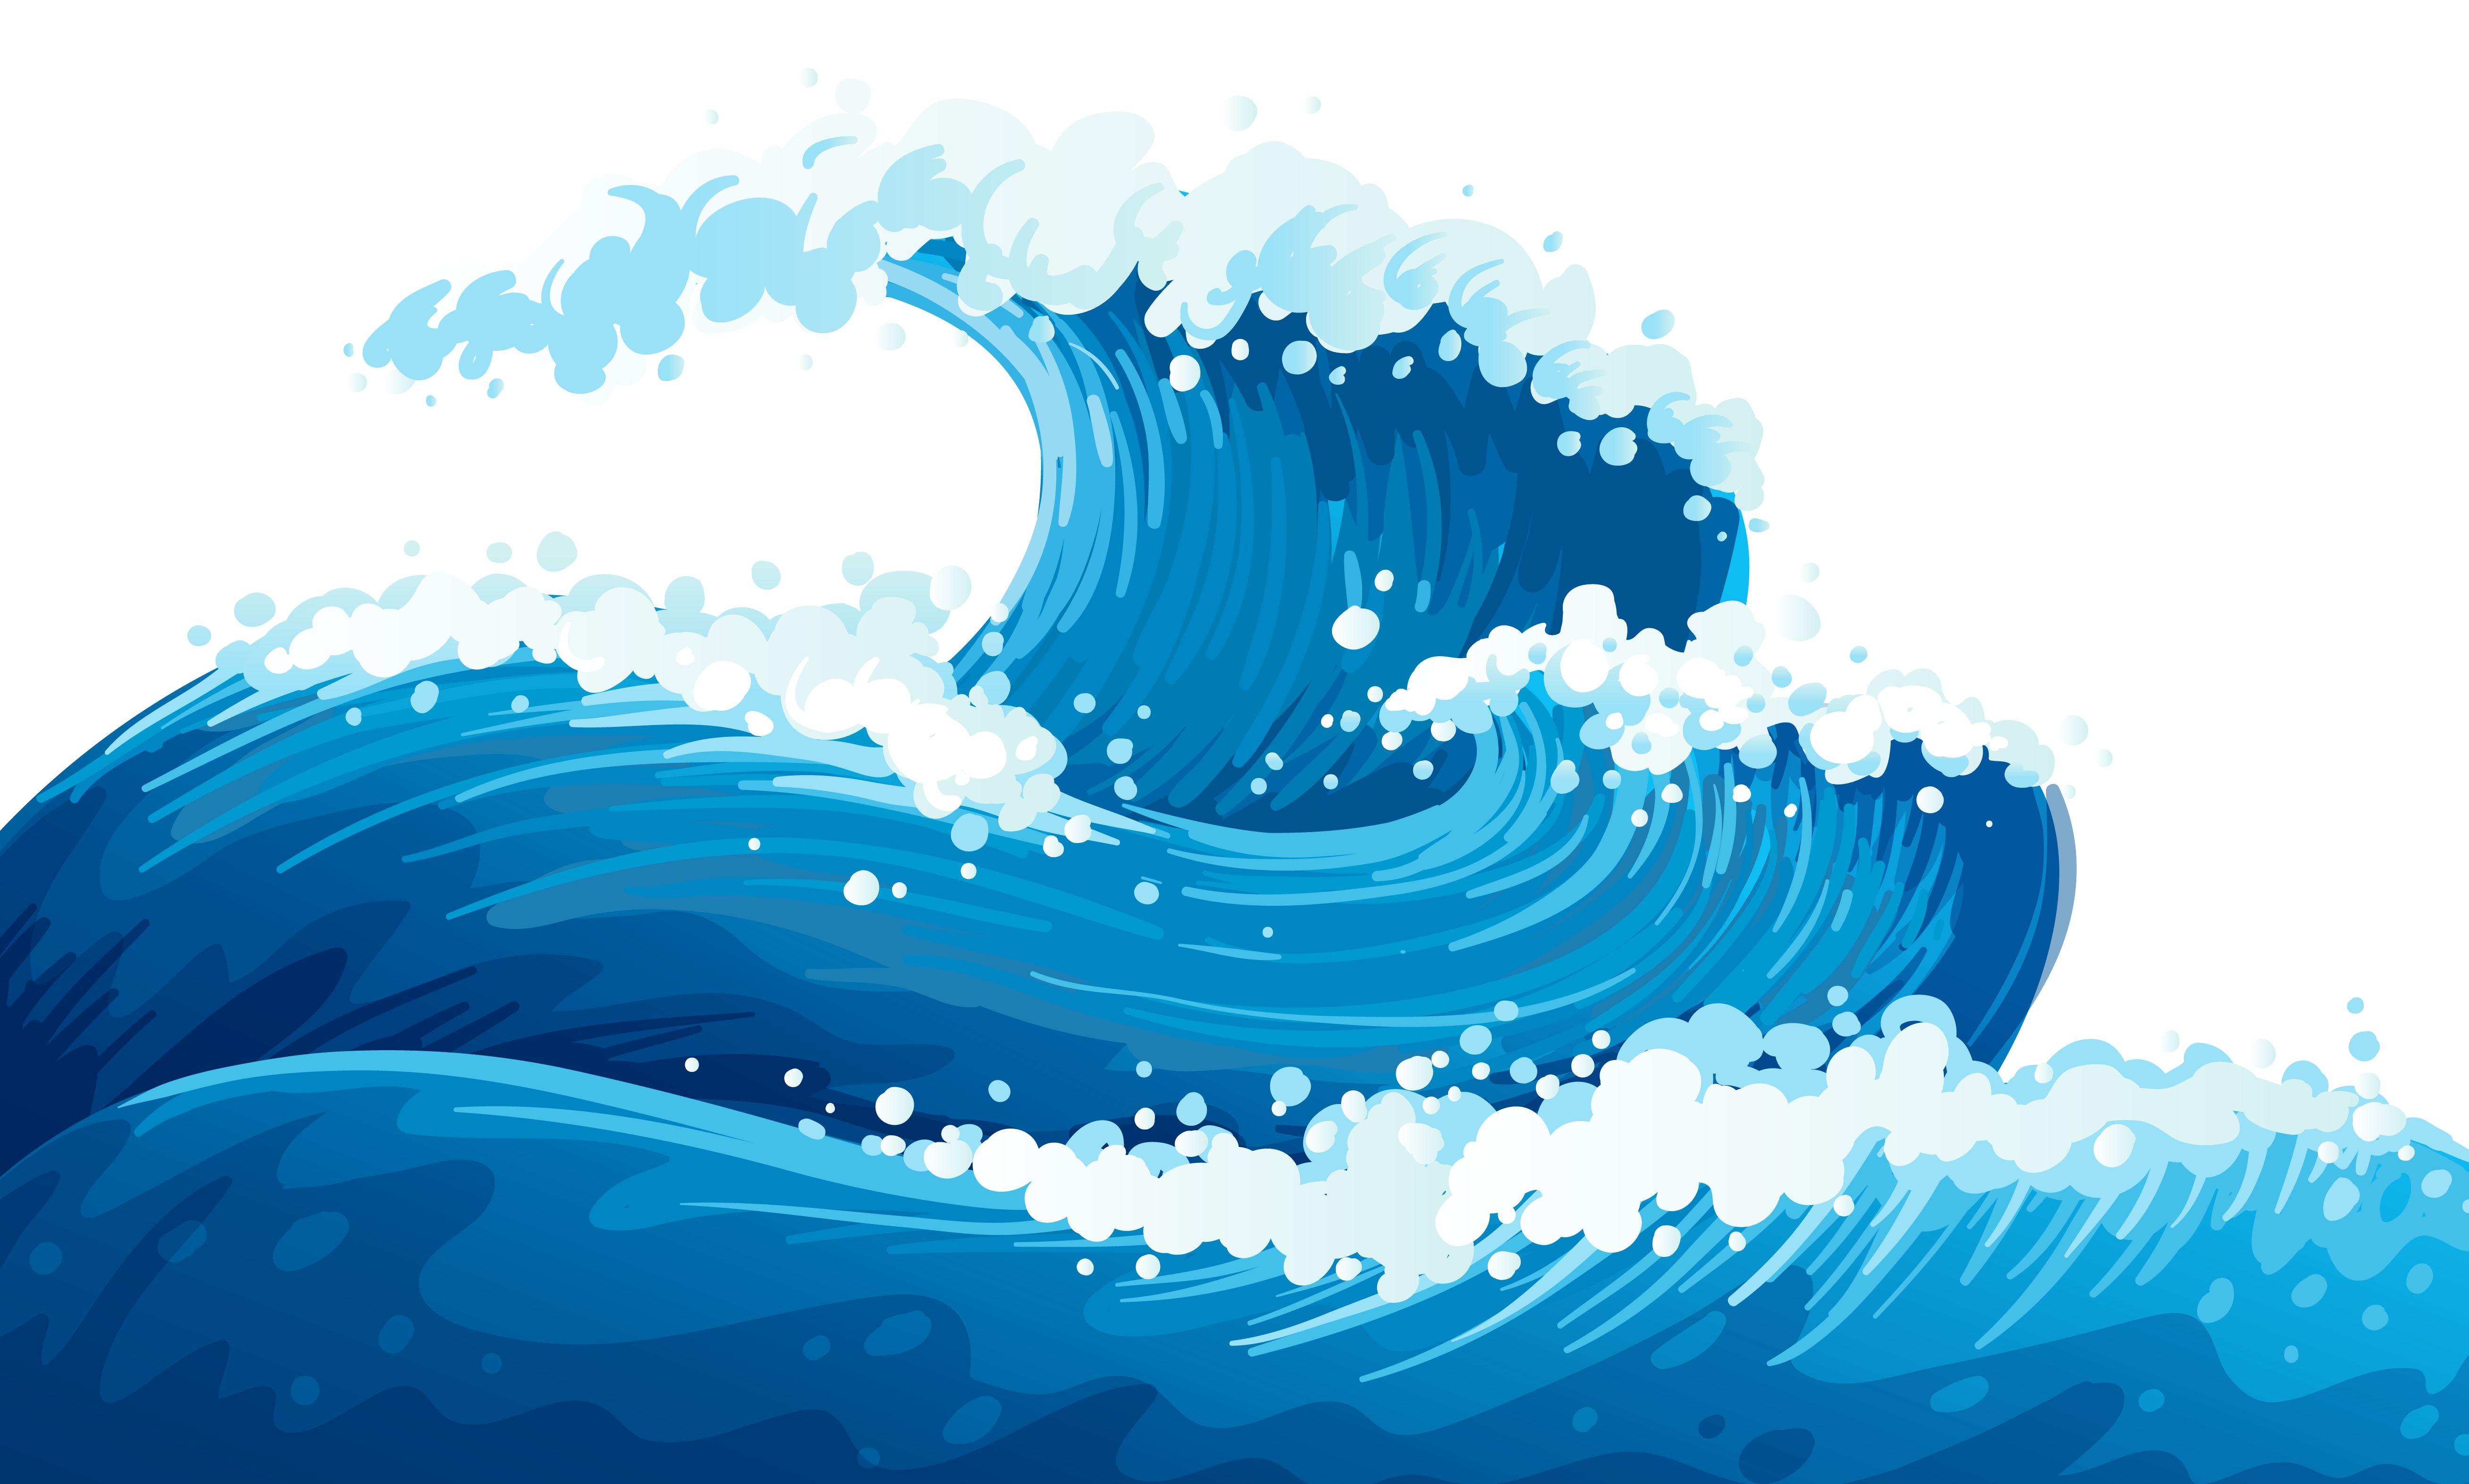 waves clipart clear background